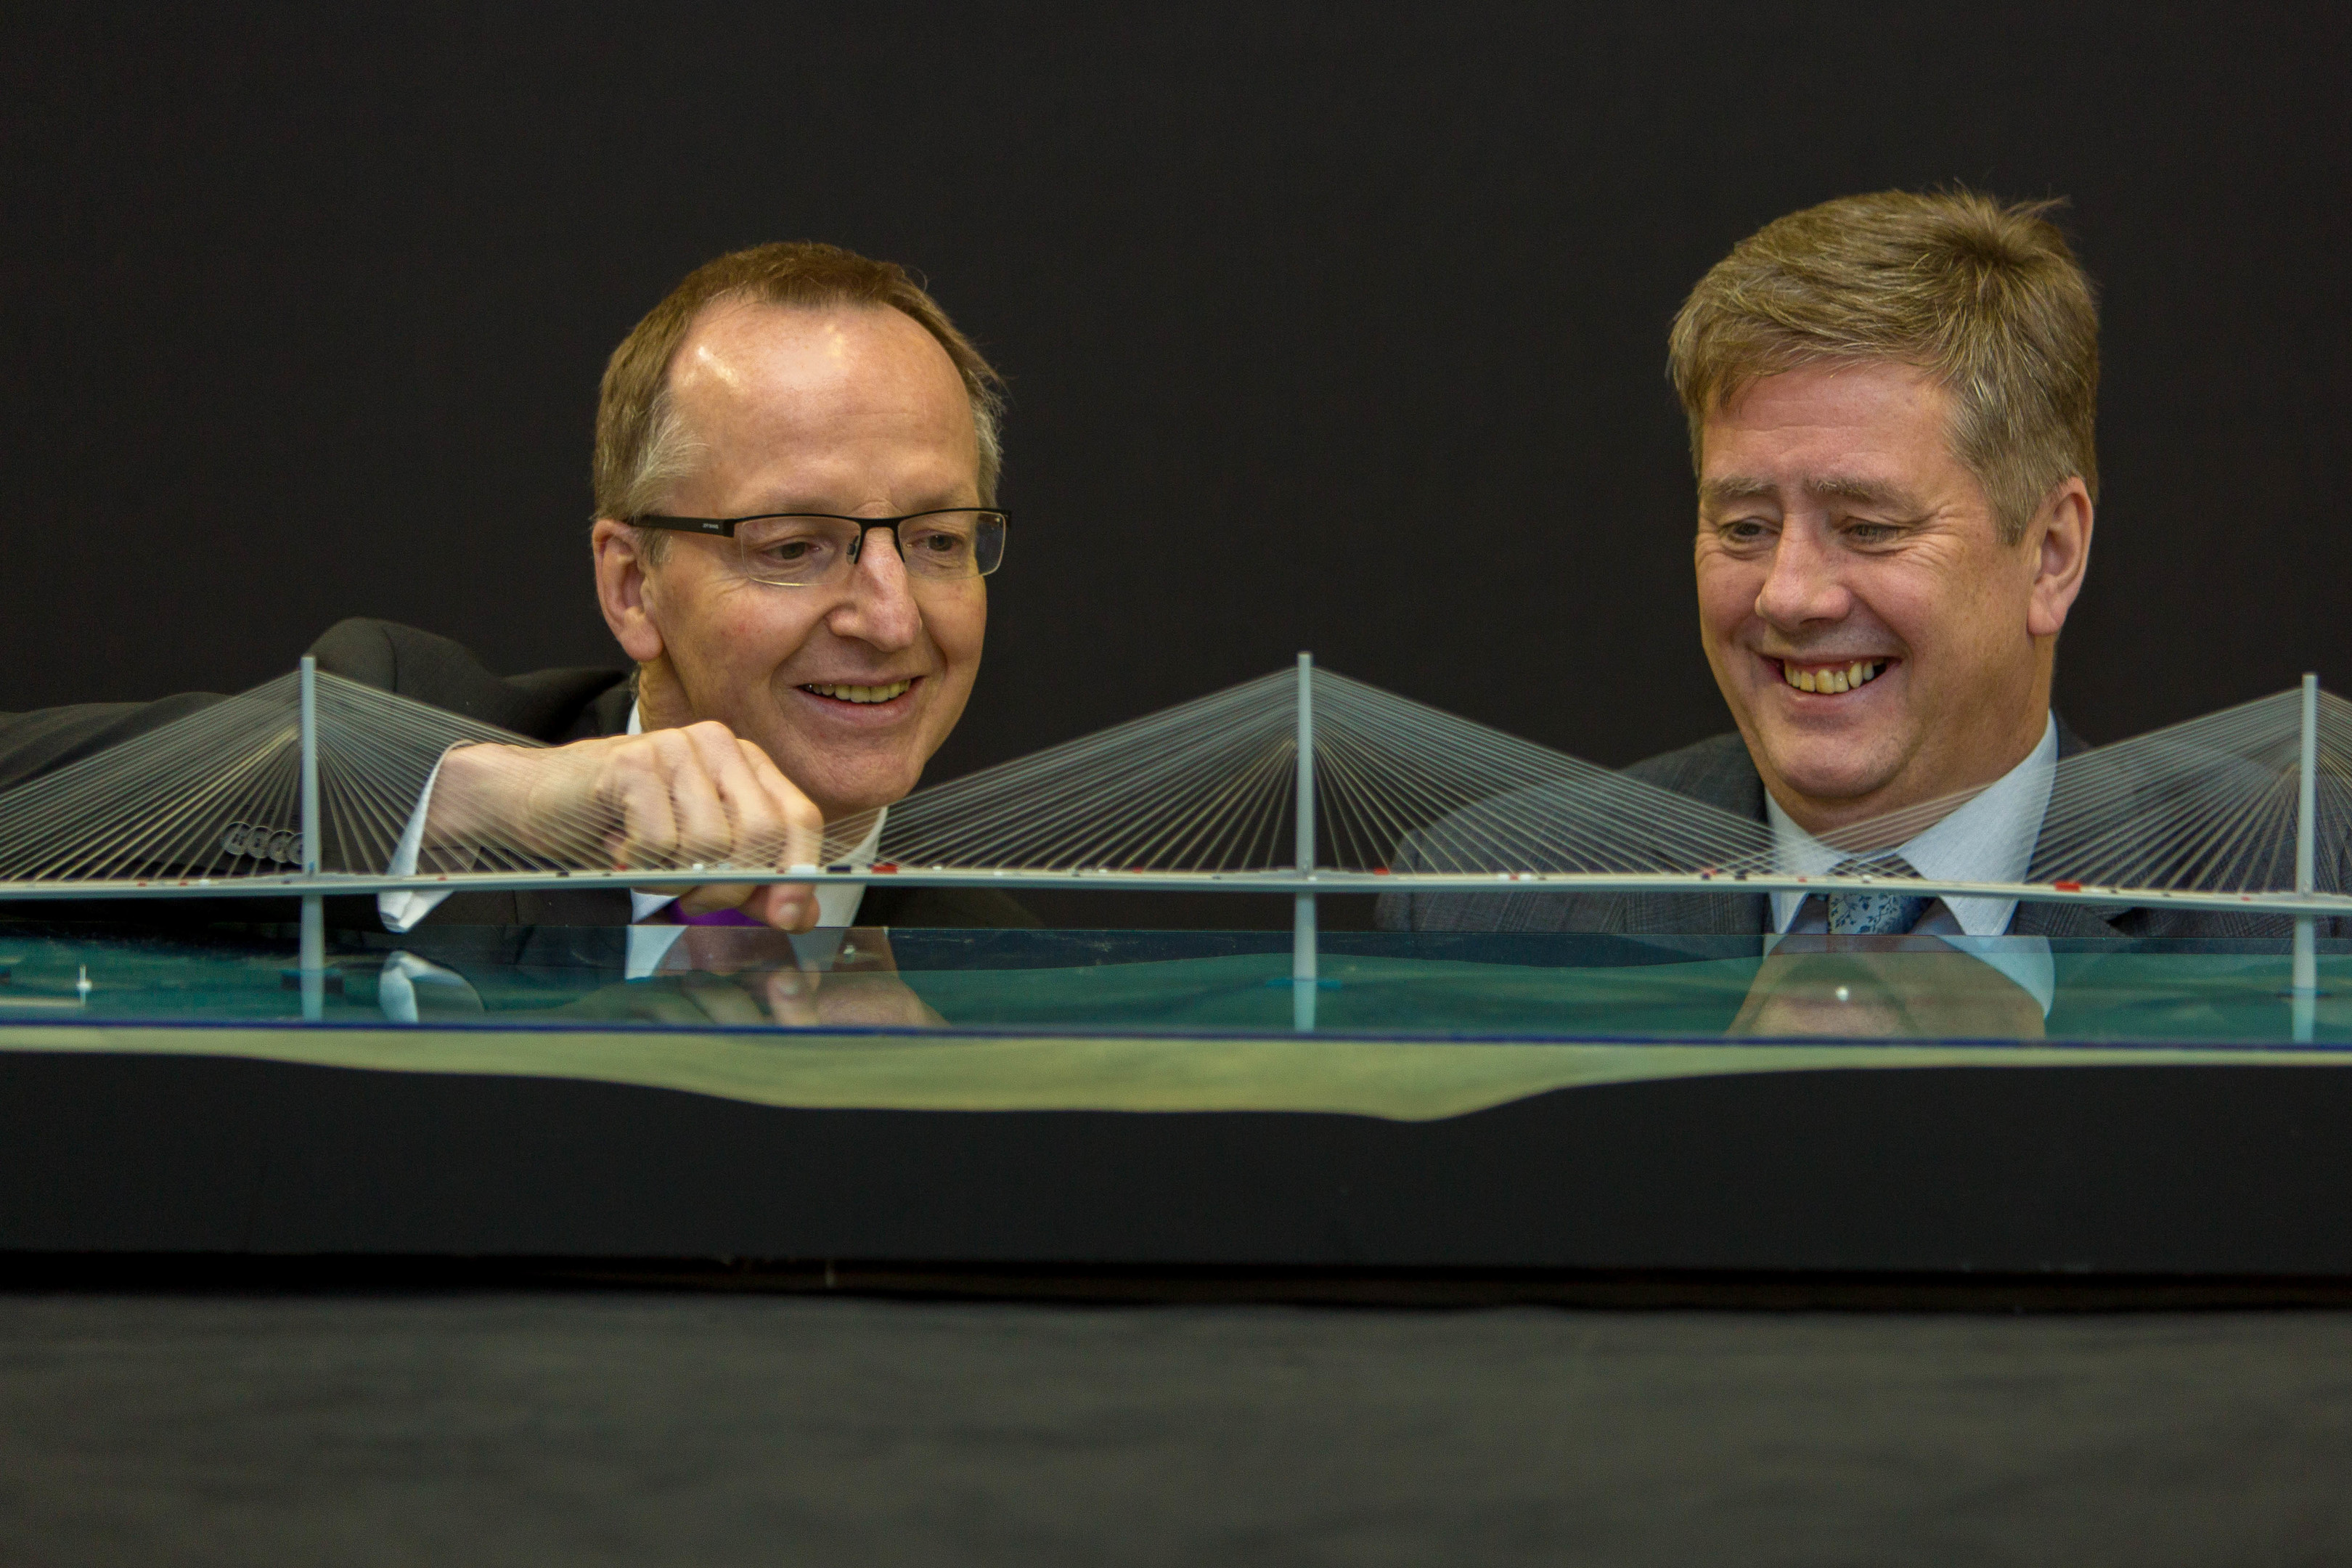 Minister Keith Brown is shown the model of the new Queensferry Crossing at National Museums Collections Centre in Edinburgh by Dr Gordon Rintoul